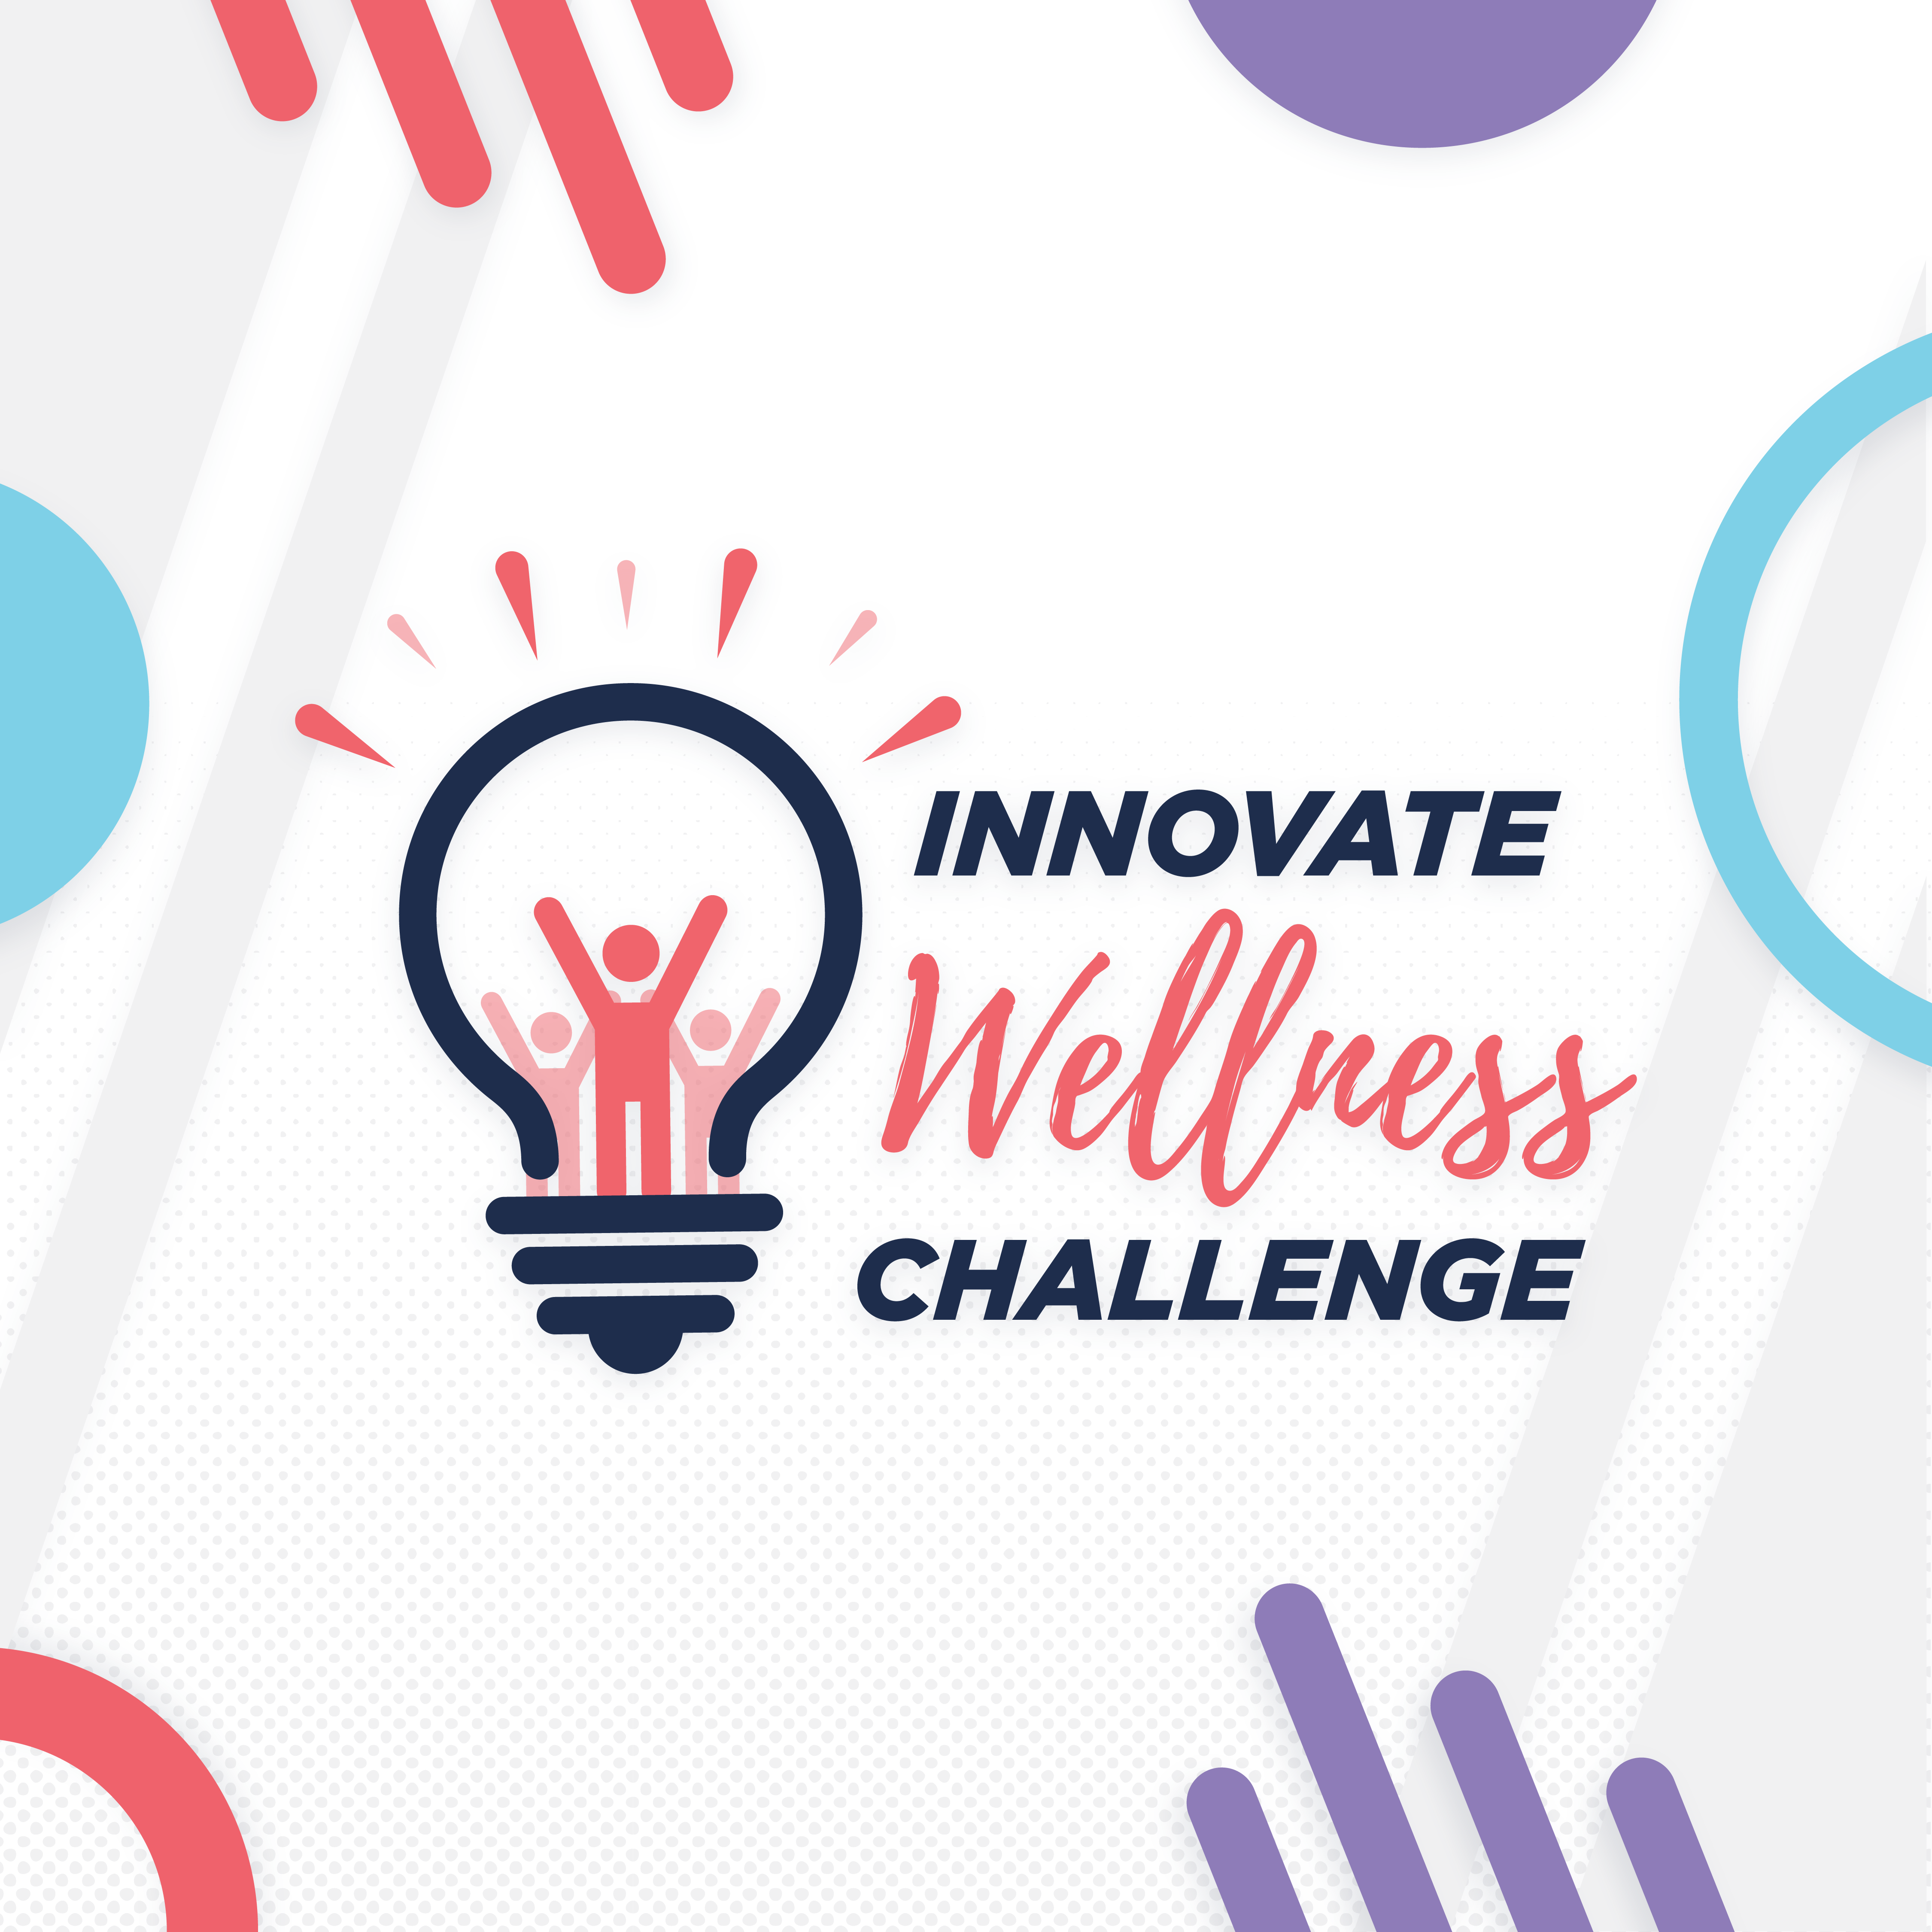 Innovate Wellness Challenge